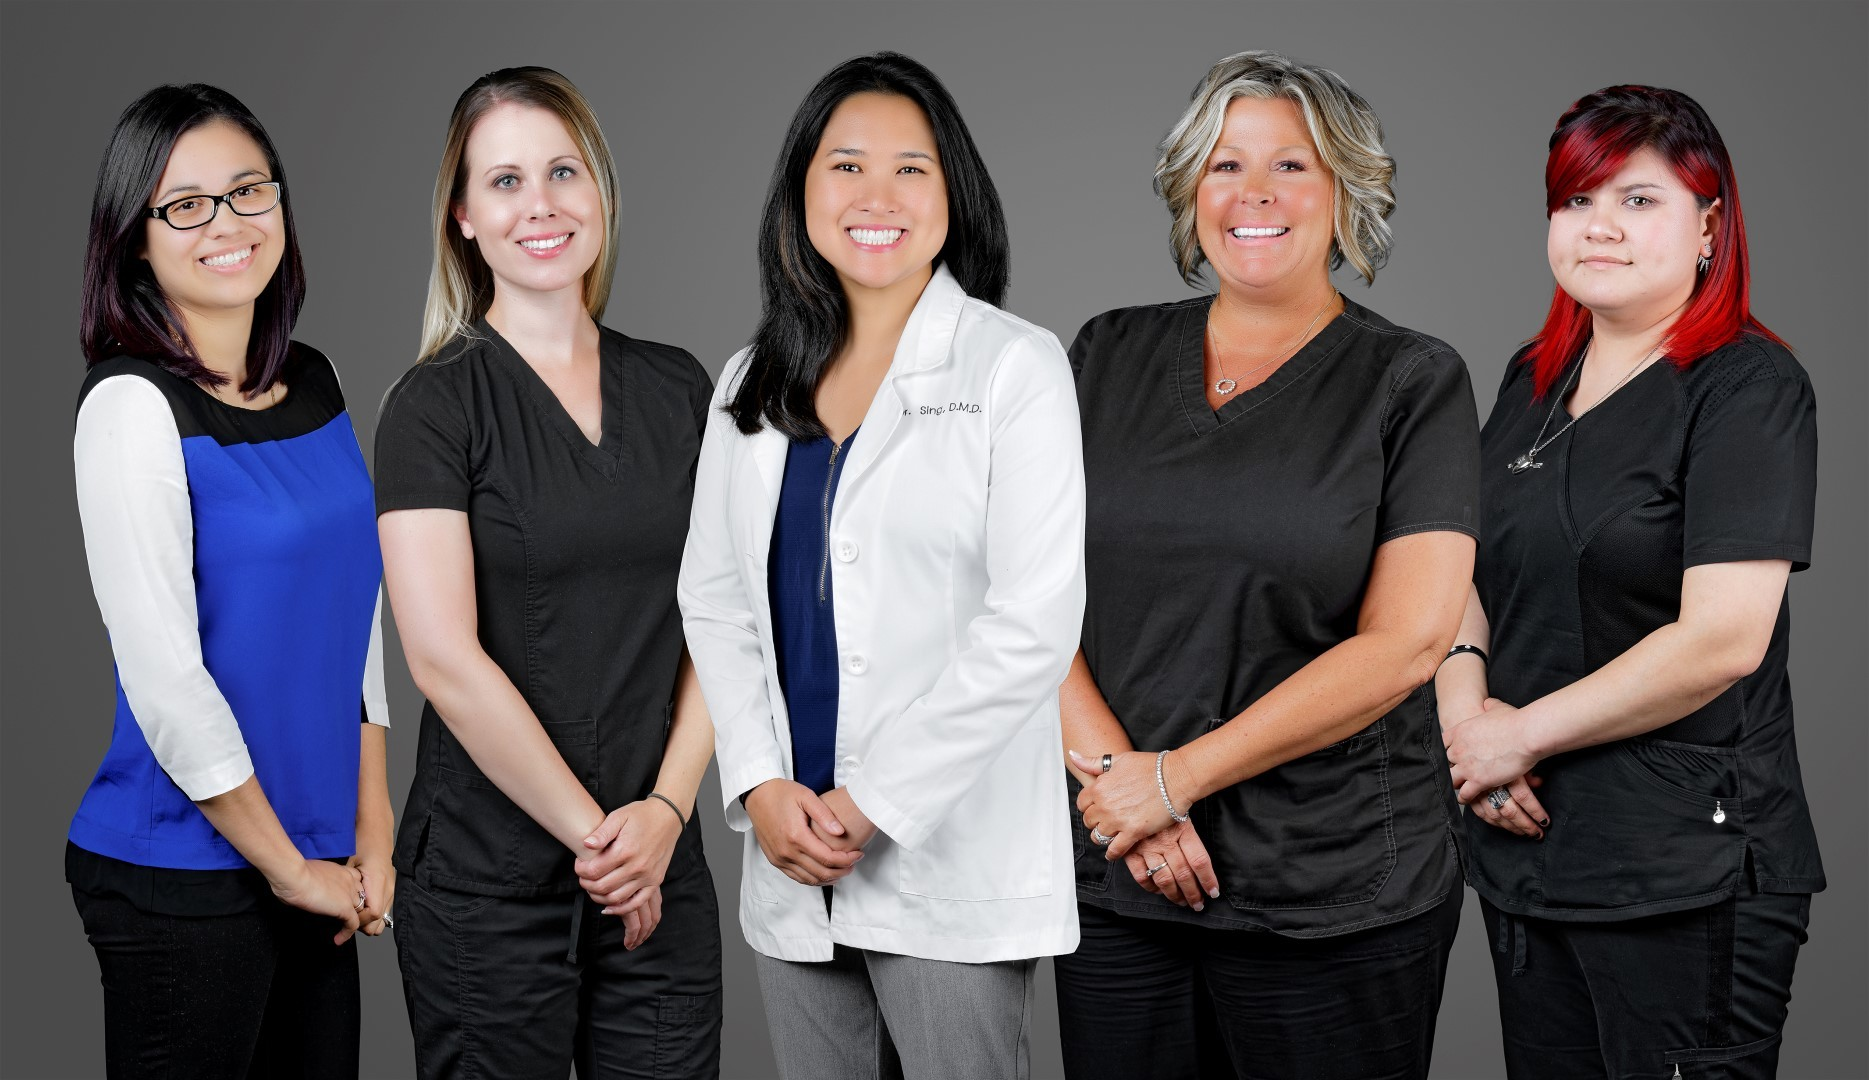 True Dental Team